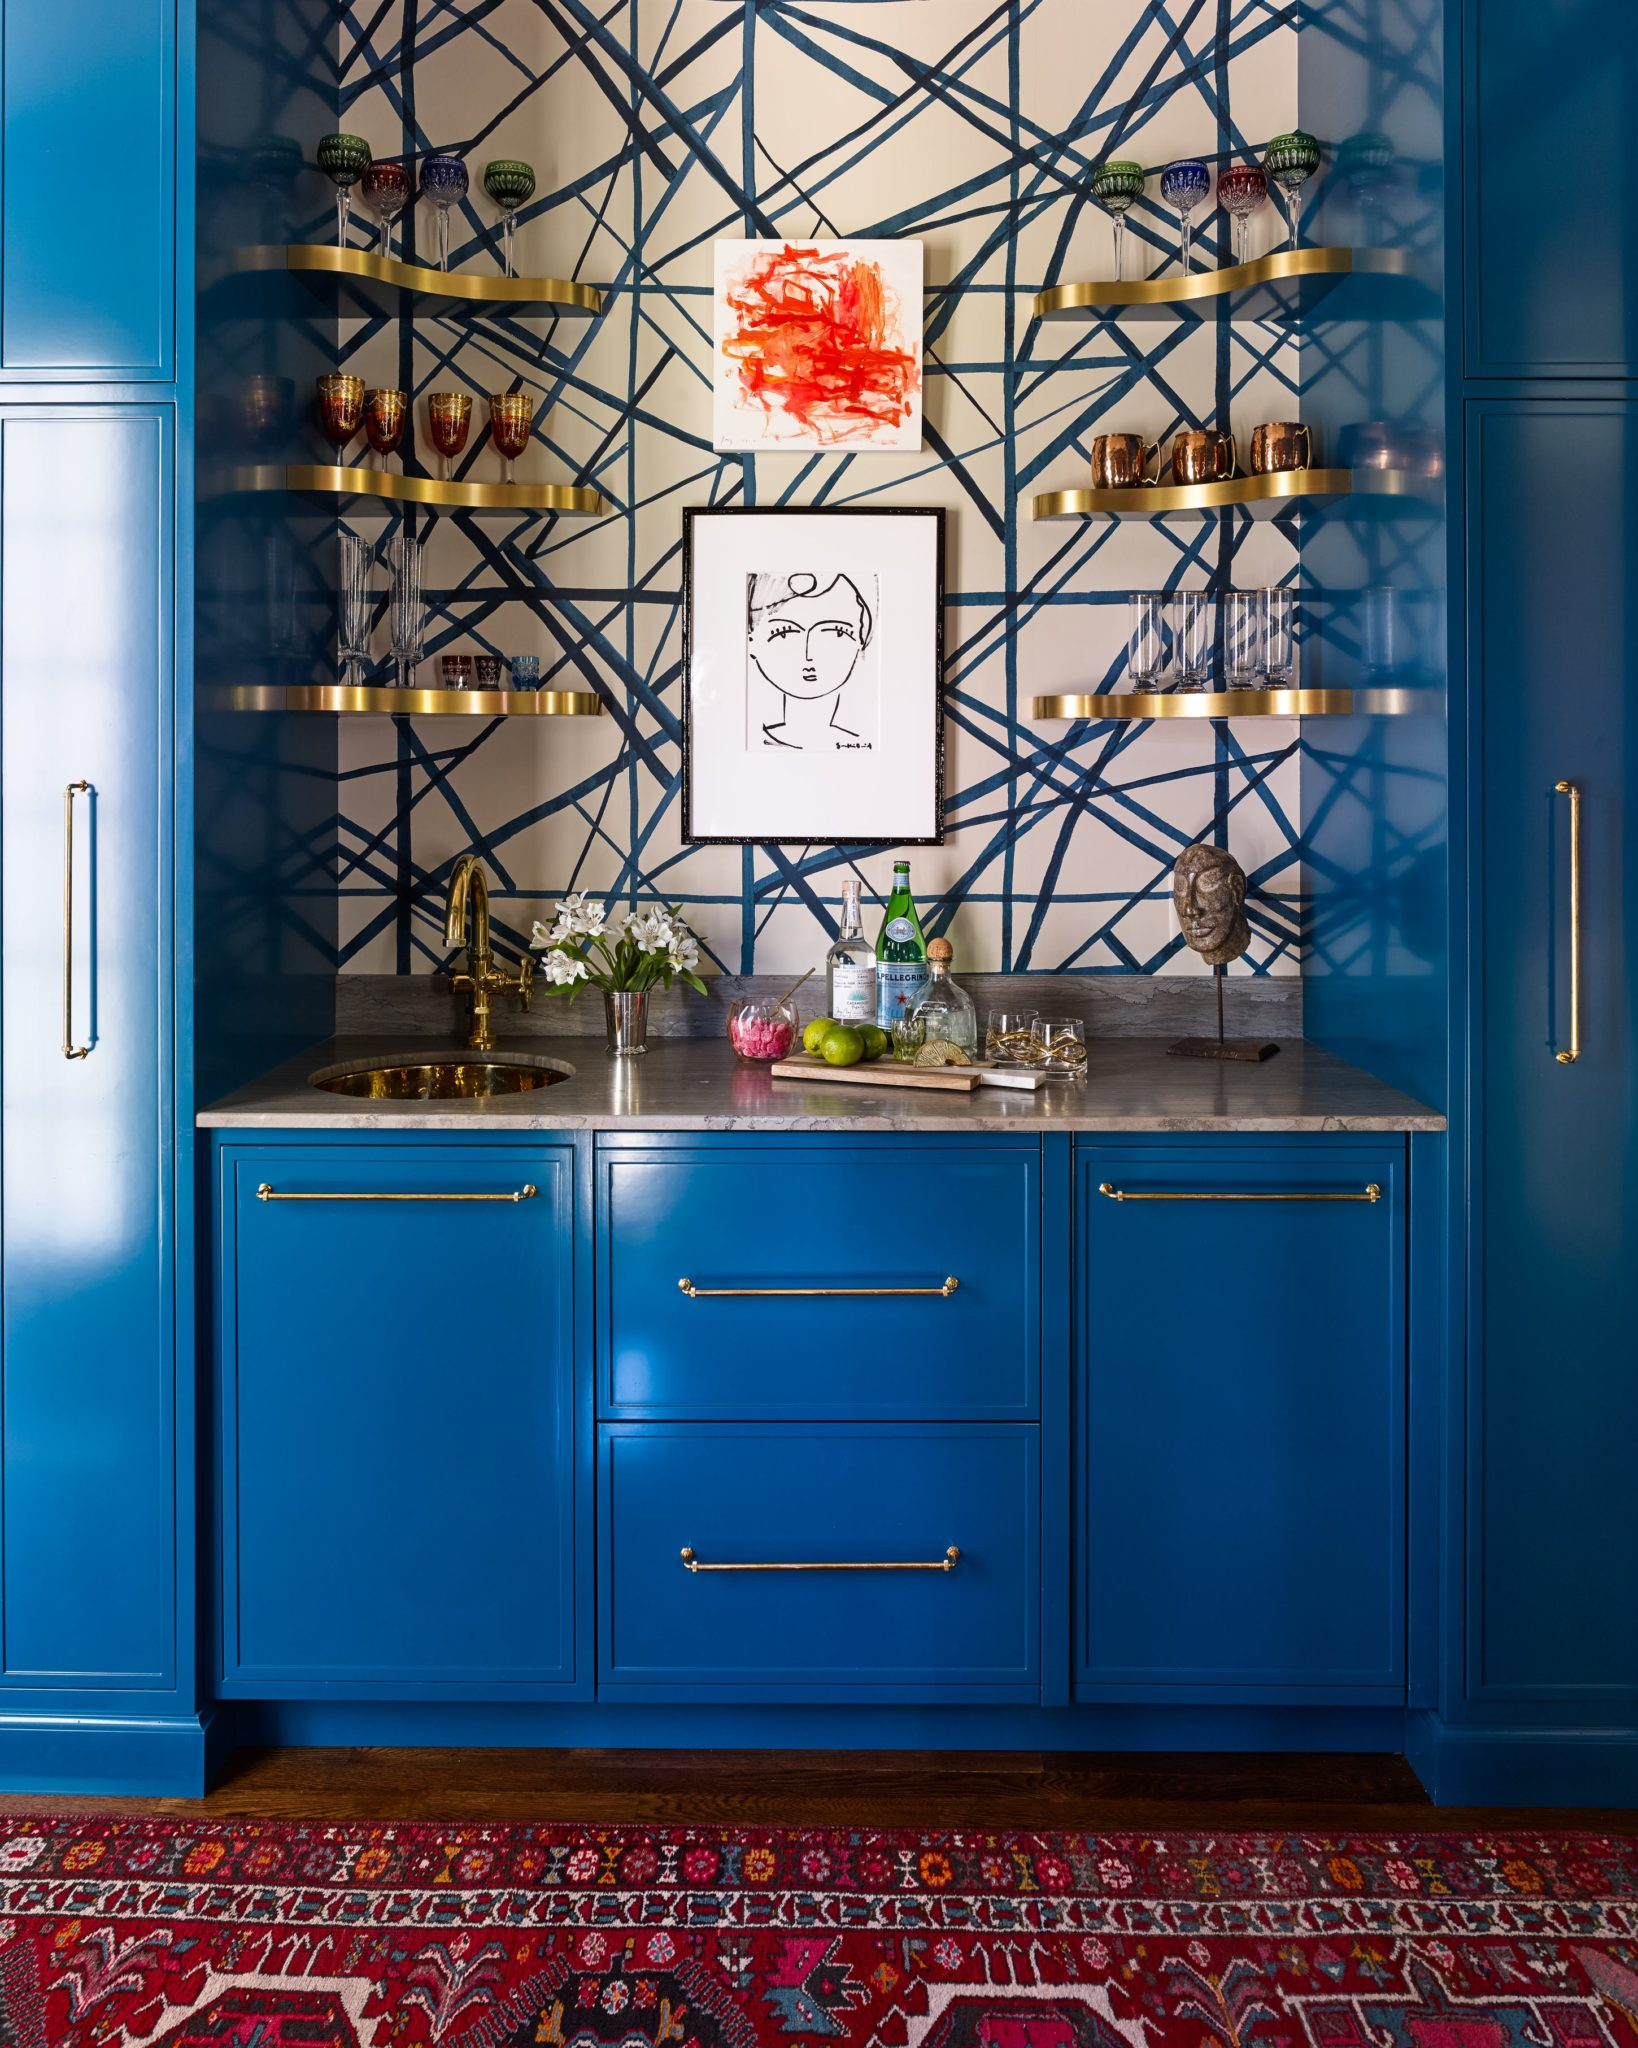 """Merge Style with Function. """"A well-designed bar should have the necessary shelving, storage, and drinkware to be practical, but these things should be worked into the design in a strategic way,"""" saysCharlotte Lucas. """"It's about masking the functionality with color and pretty details.""""   Utilize vertical space. """"Most home bars are in small spaces, so it's crucial to get creative with storage solutions and displays,"""" Lucas says.   Tucked away in a hallway, this bar boastsa bold color to ensurethat it stands out among the surrounding spaces."""